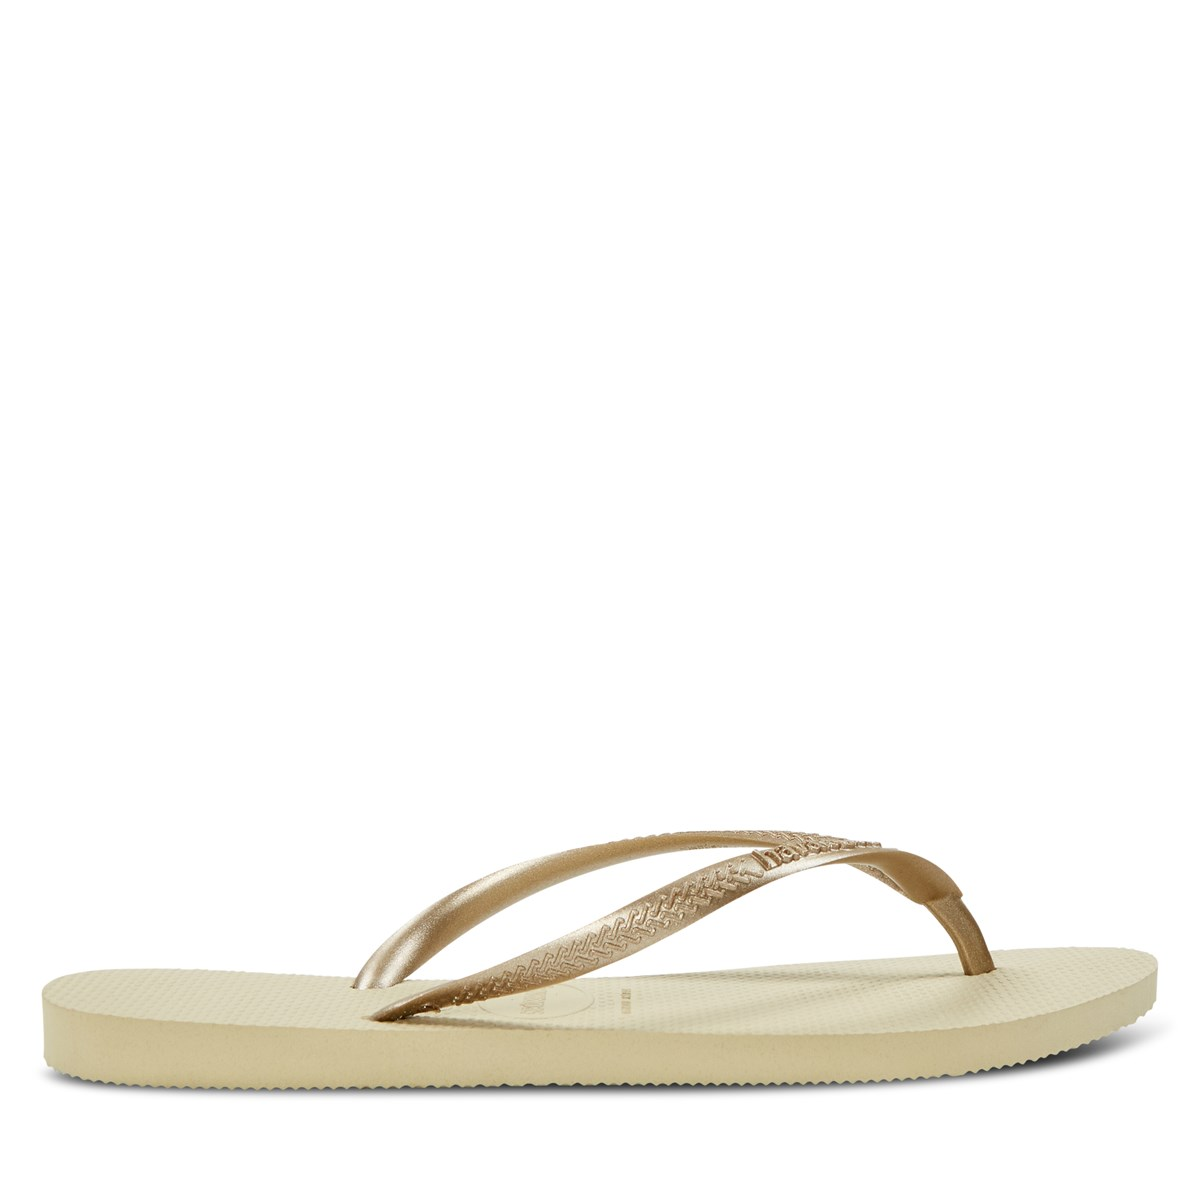 Women's Slim Flip Flops in Gold